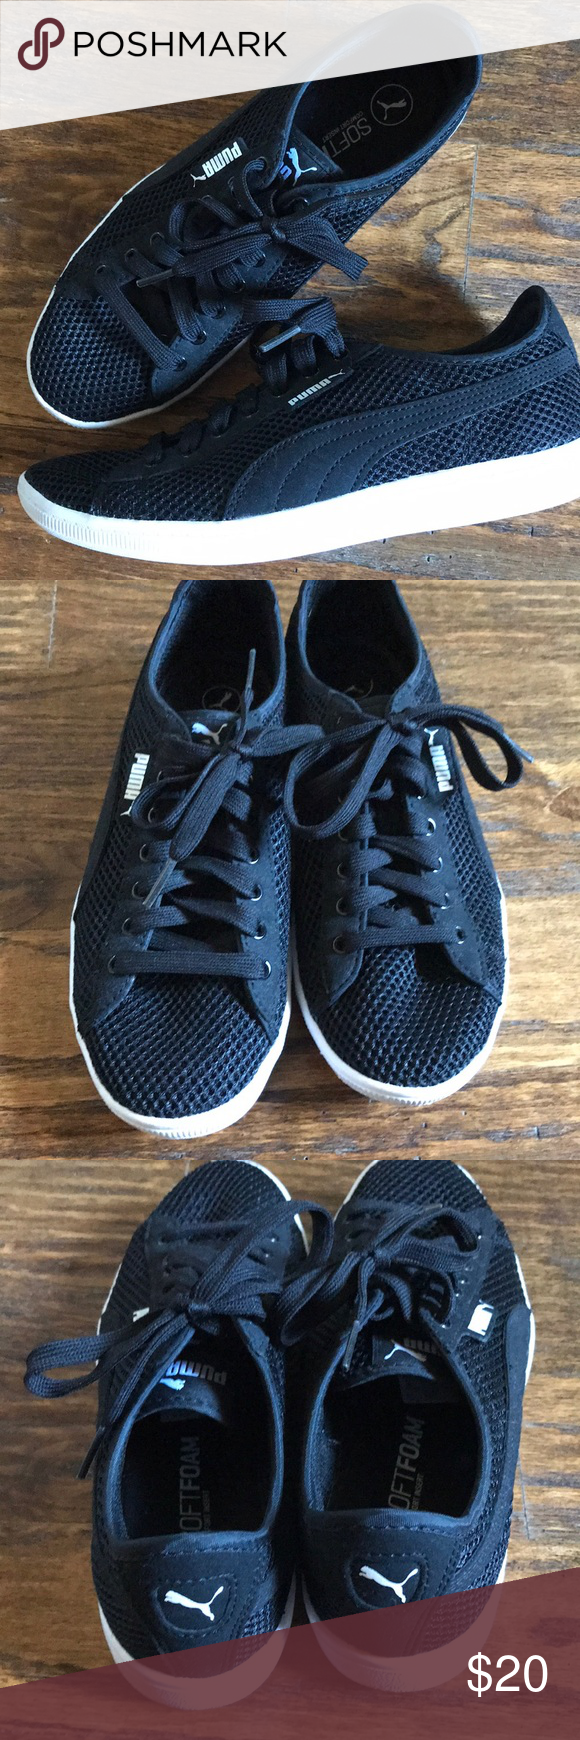 fab68ff715ca70 Black Puma sneakers Brand new black Puma sneakers. Worn once! Mesh-like  upper with soft foam sole. Excellent condition! Puma Shoes Sneakers